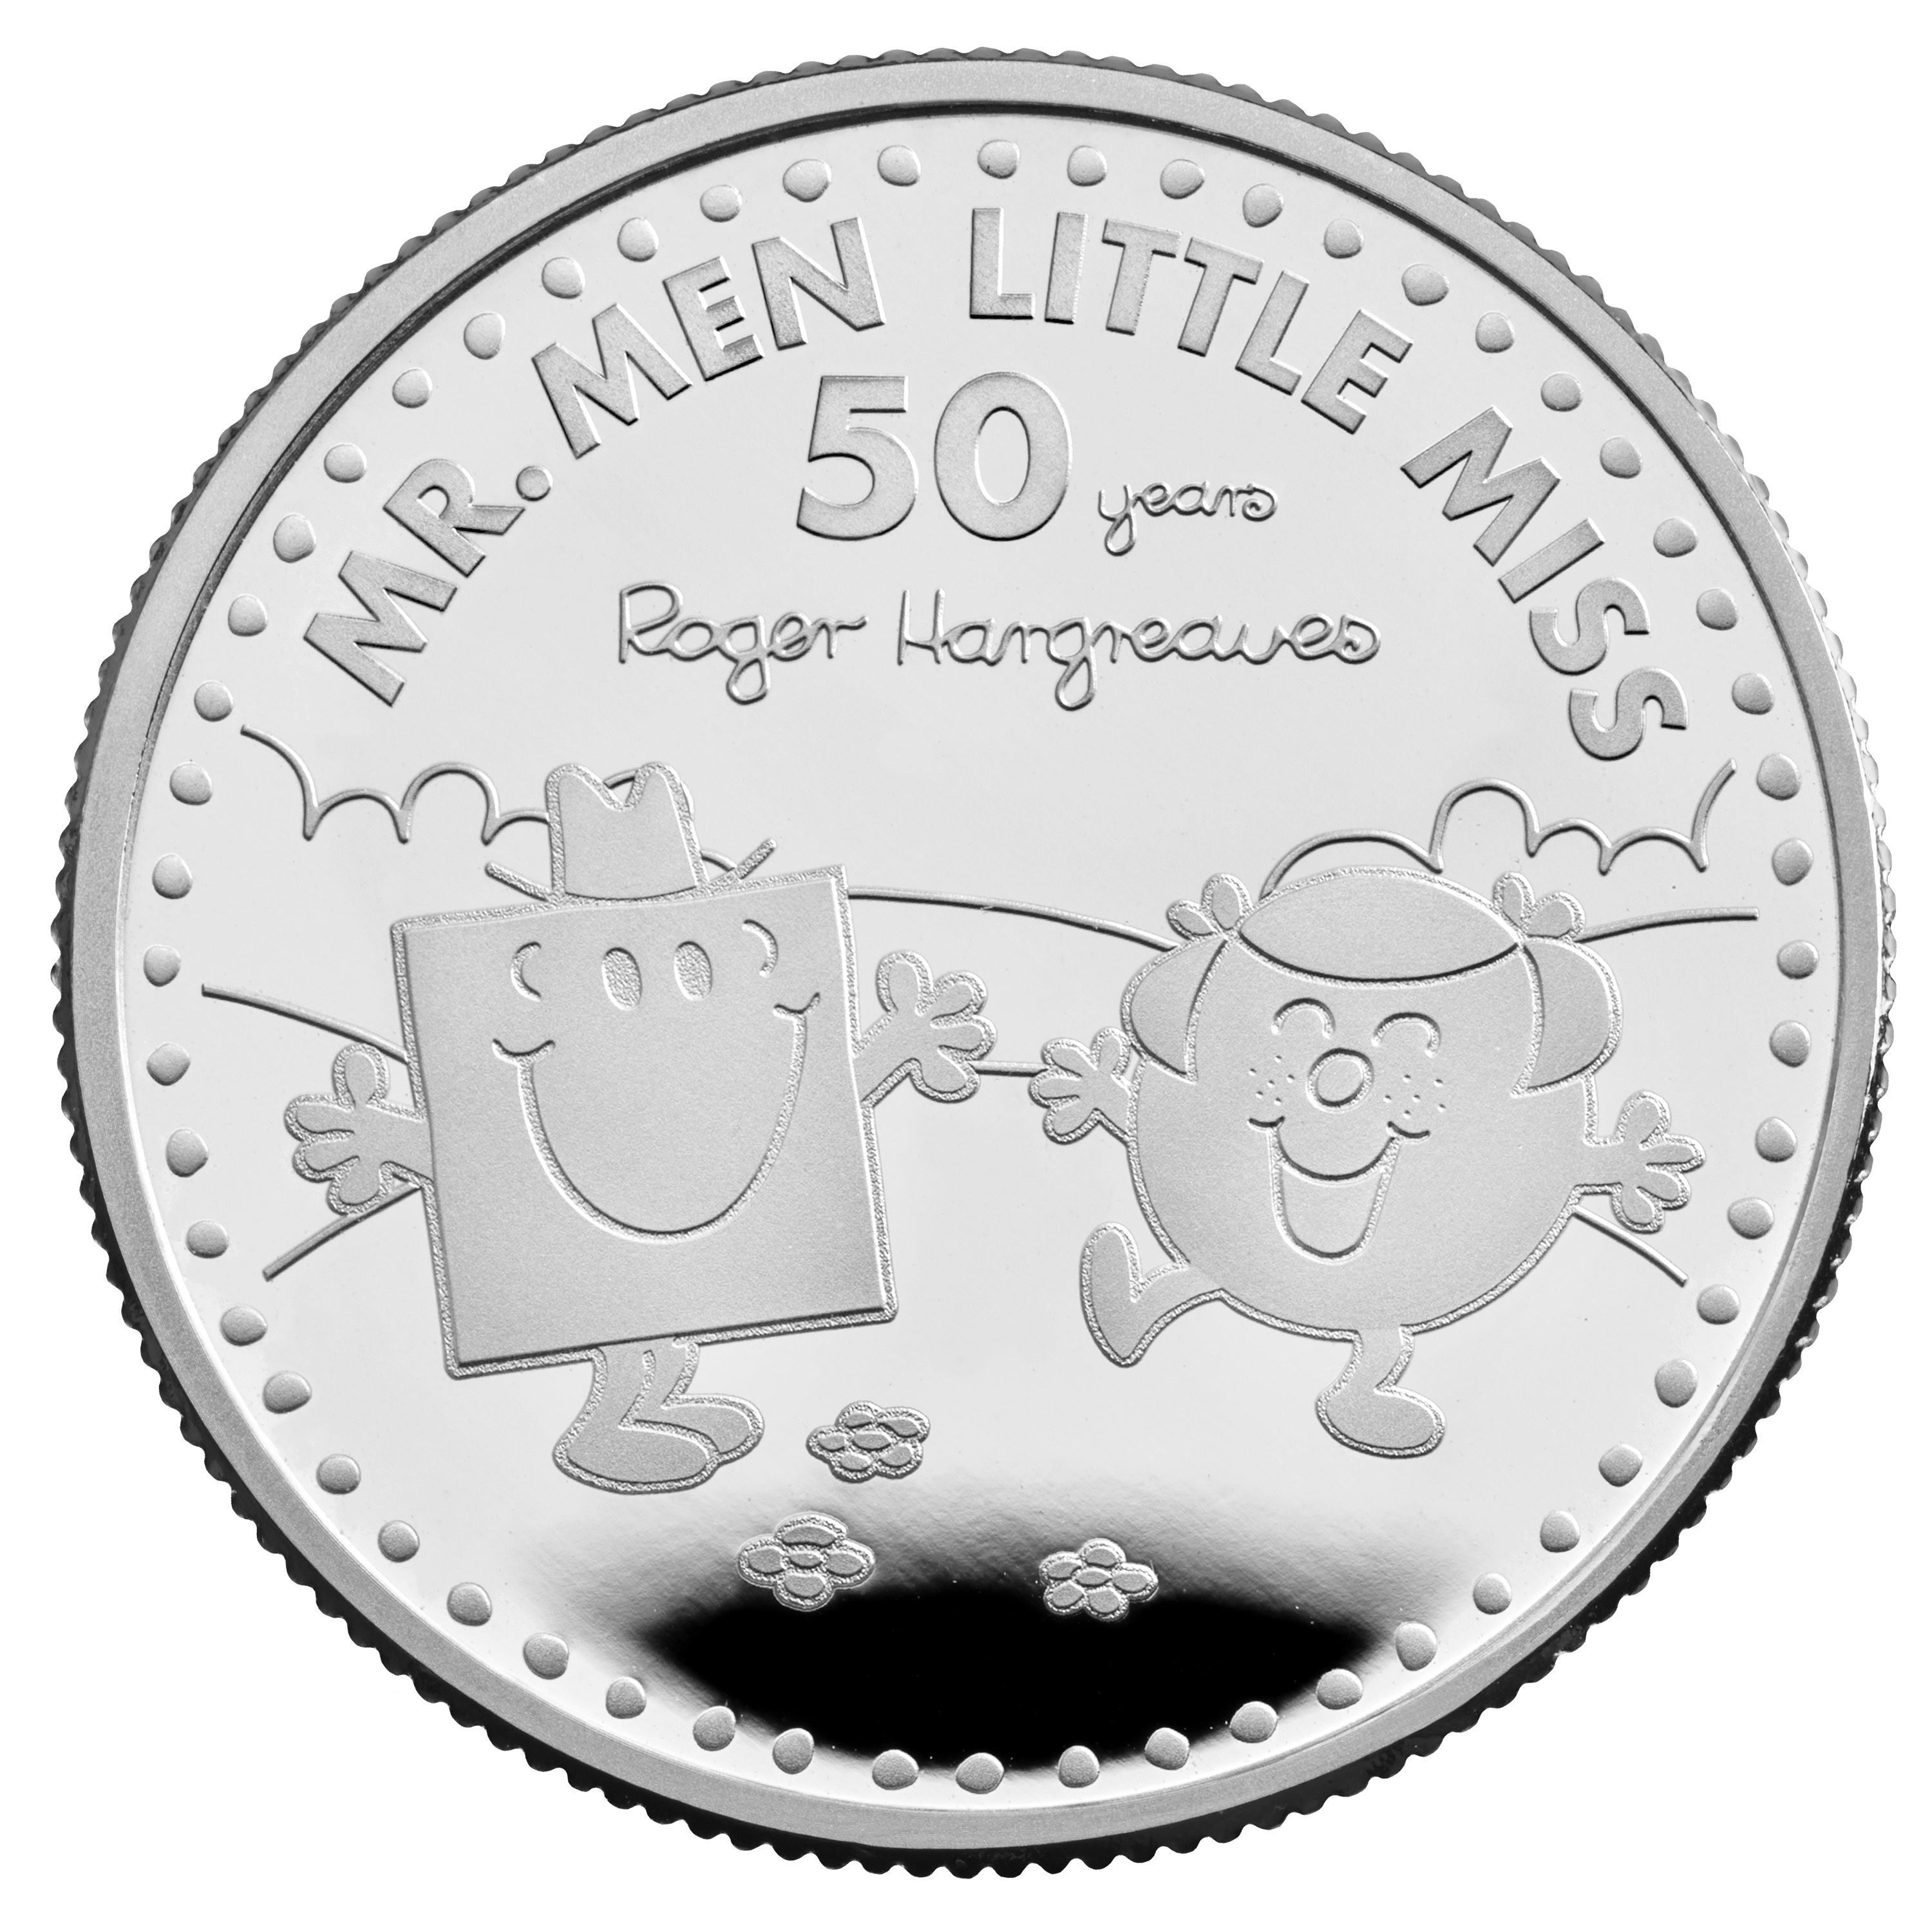 The 50th Anniversary of Mr. Men Little Miss Commemorative coins